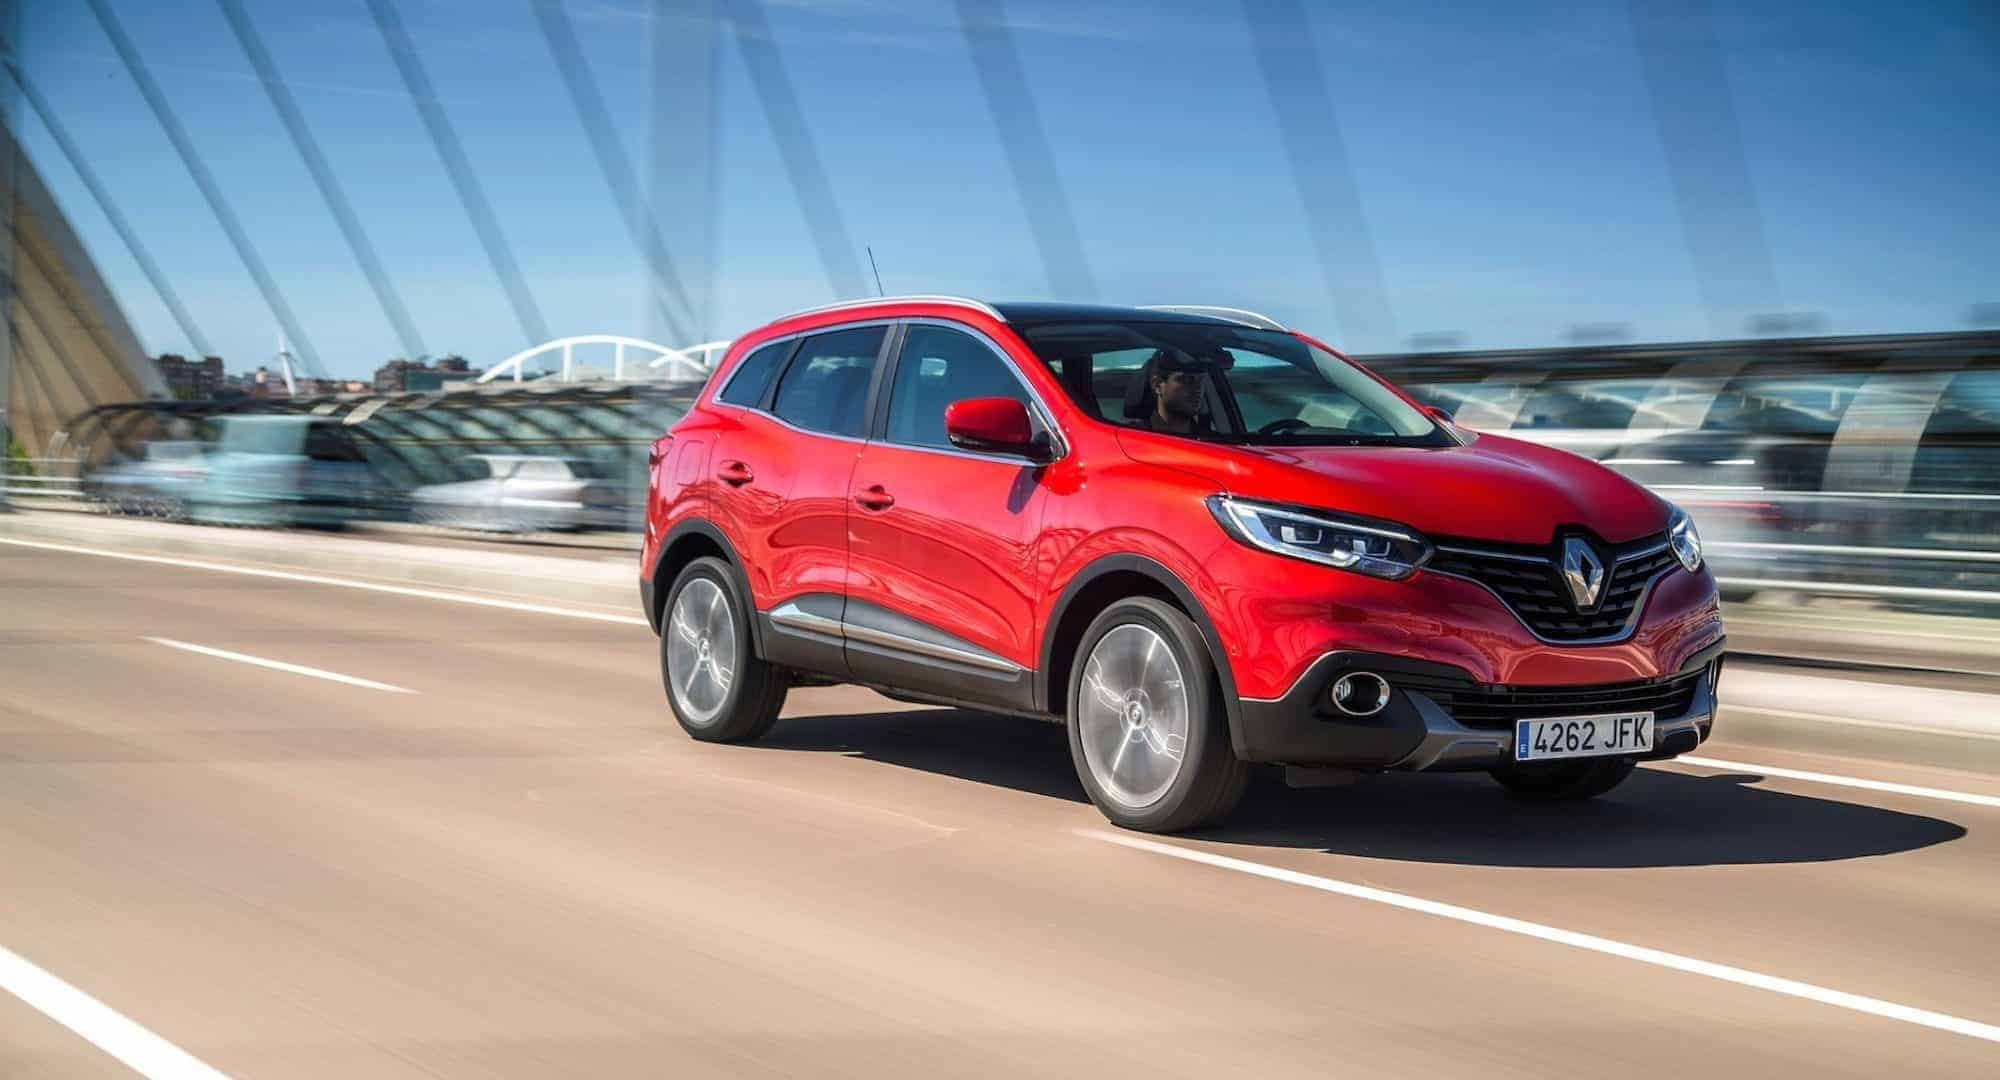 Renault may be planning two new SUVs for the UK plant